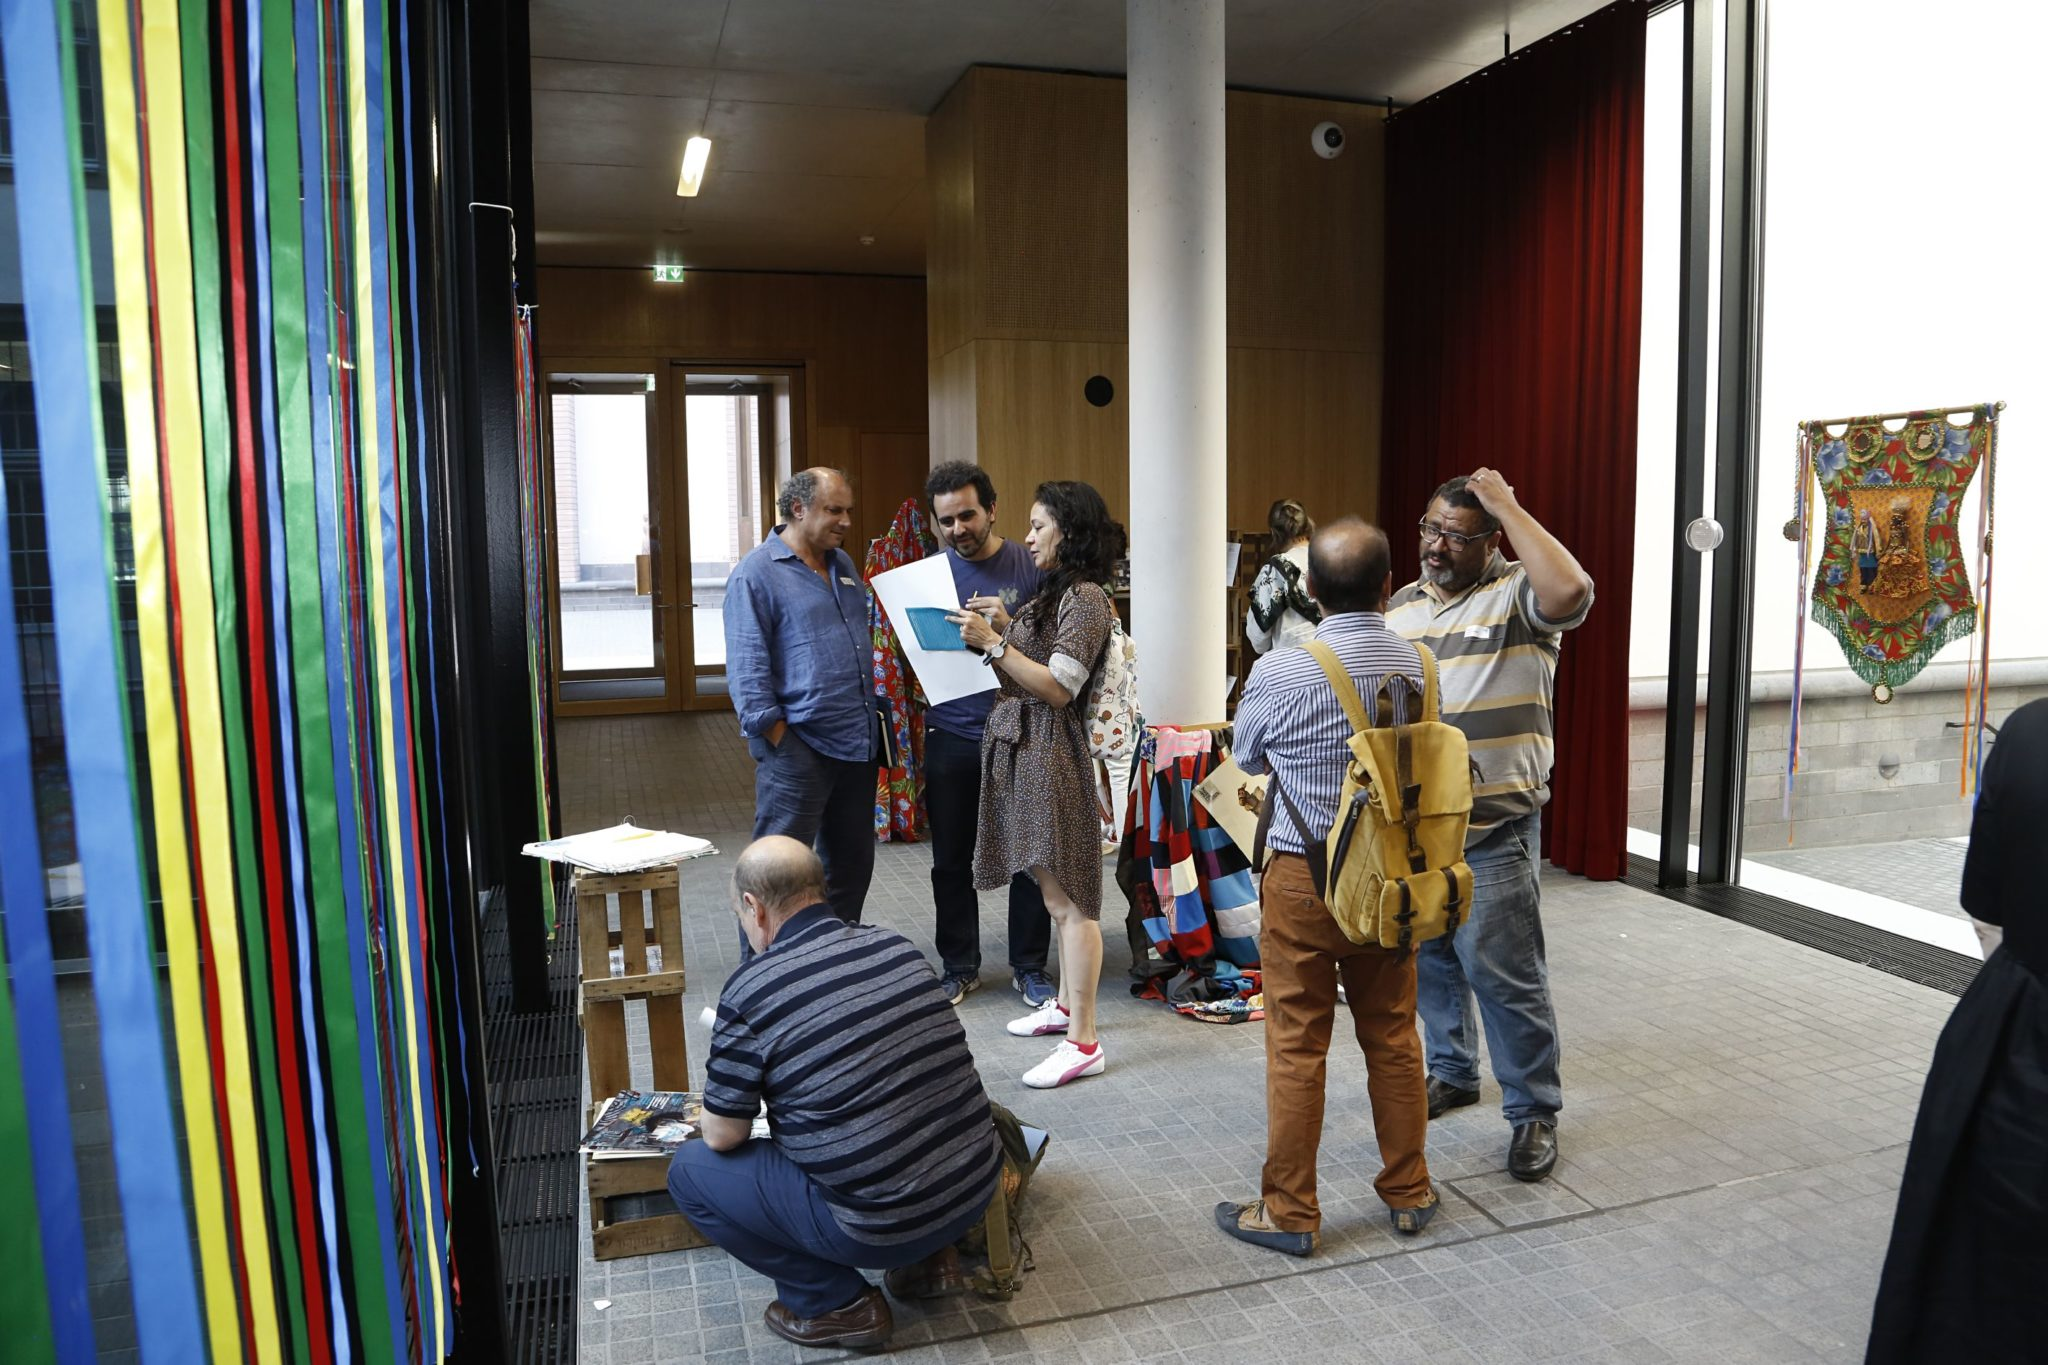 historisches museum frankfurt: the subjective Museum - Portuguese and Brazilian delegation at the Muquifu pop up exhibition, Photo: U. Dettmar